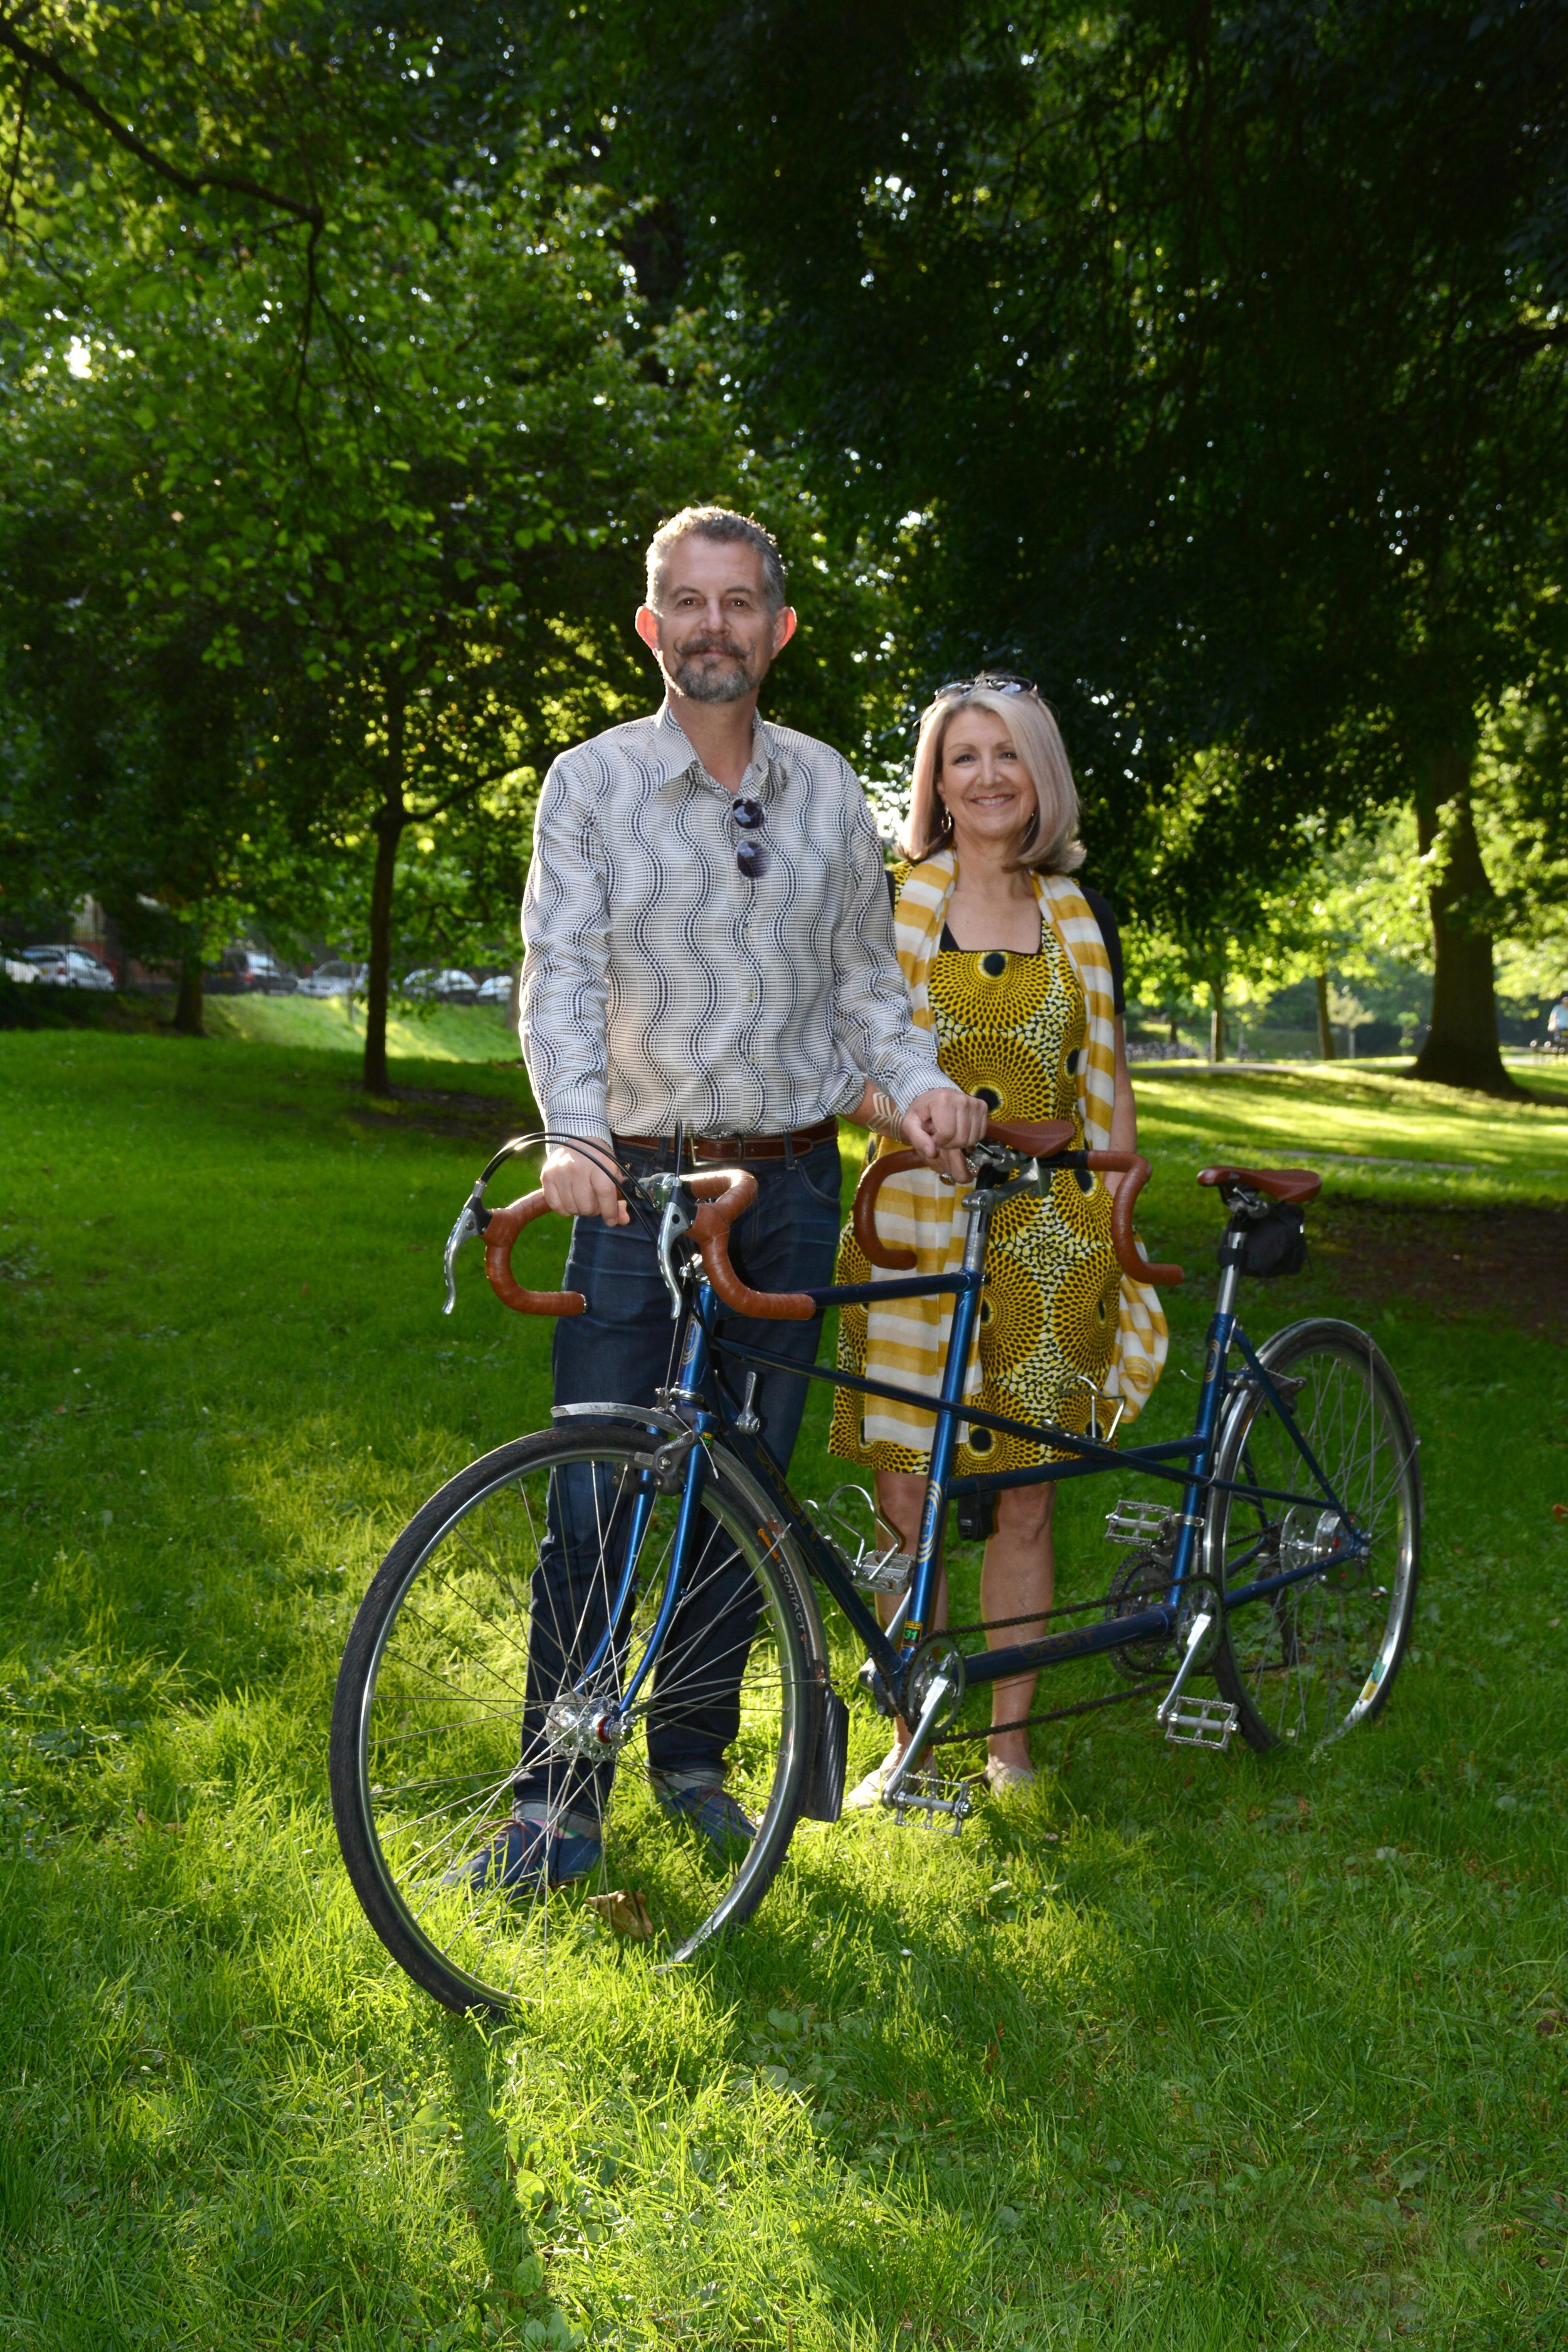 Our company tandem - two wheels are much better four